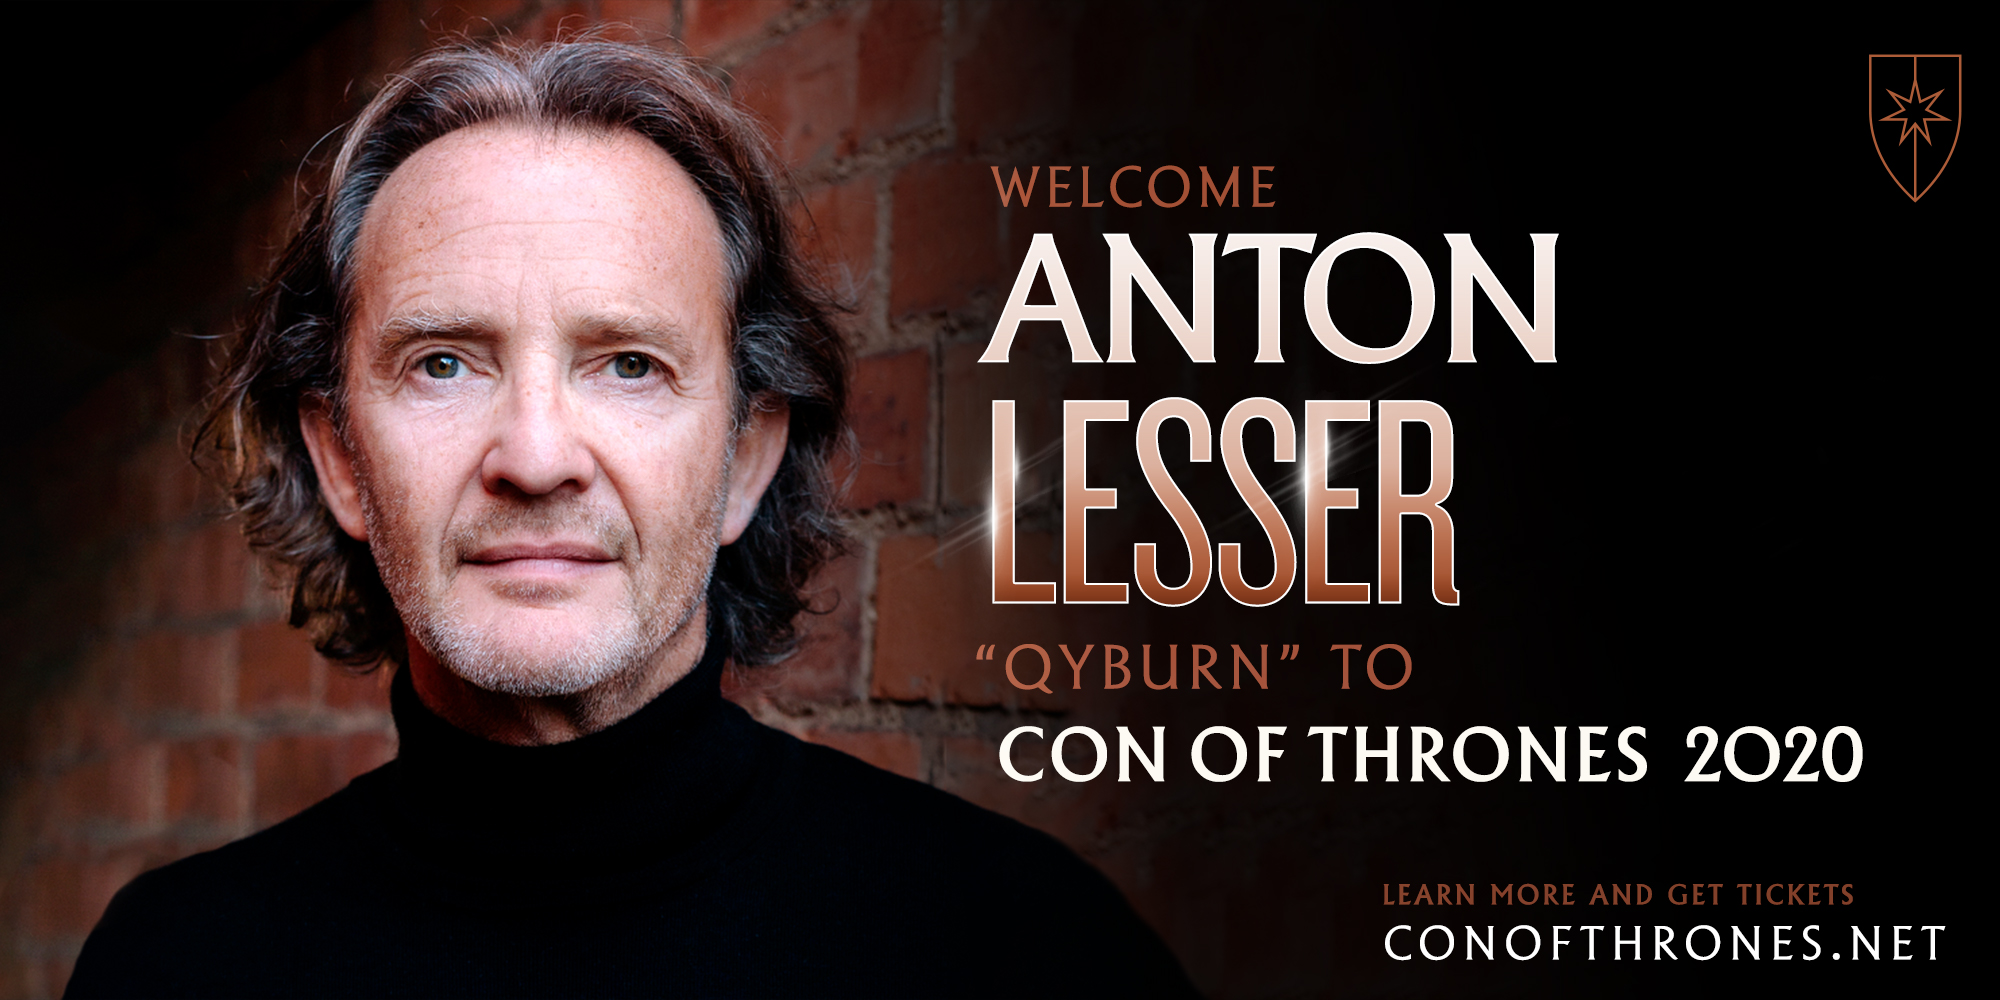 Con of Thrones COT 2020 Anton Lesser Special Guest Qyburn